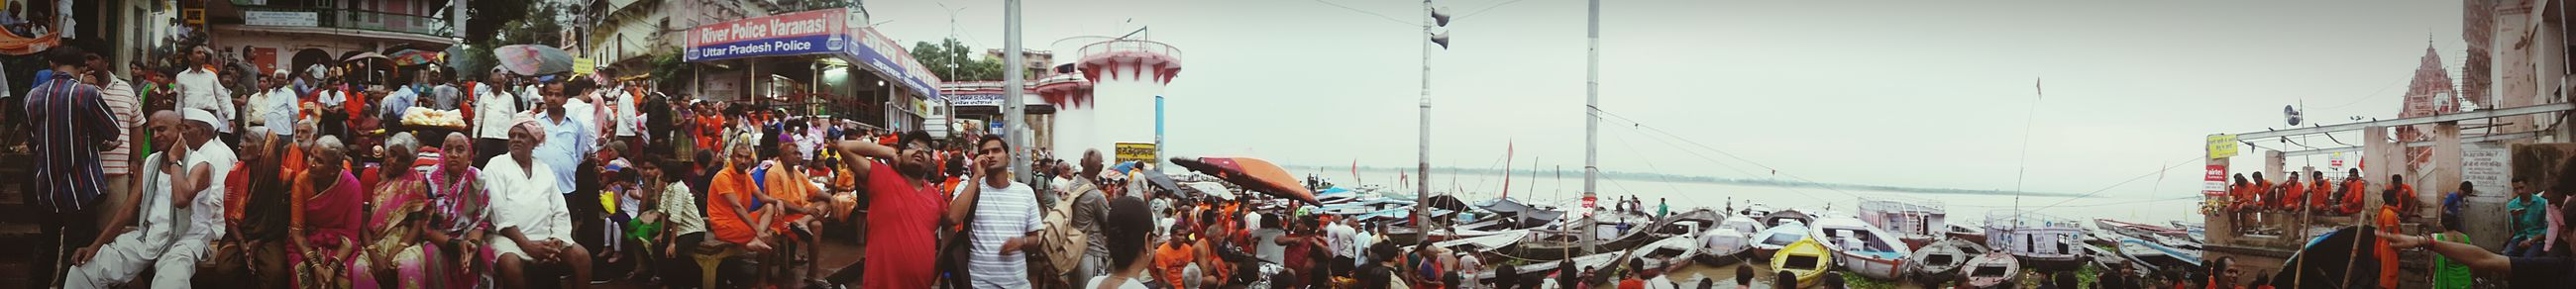 Panaroma Benaras Saavn Monsoons Crowded Ghat Instapic Instacool Instamoment First Eyeem Photo